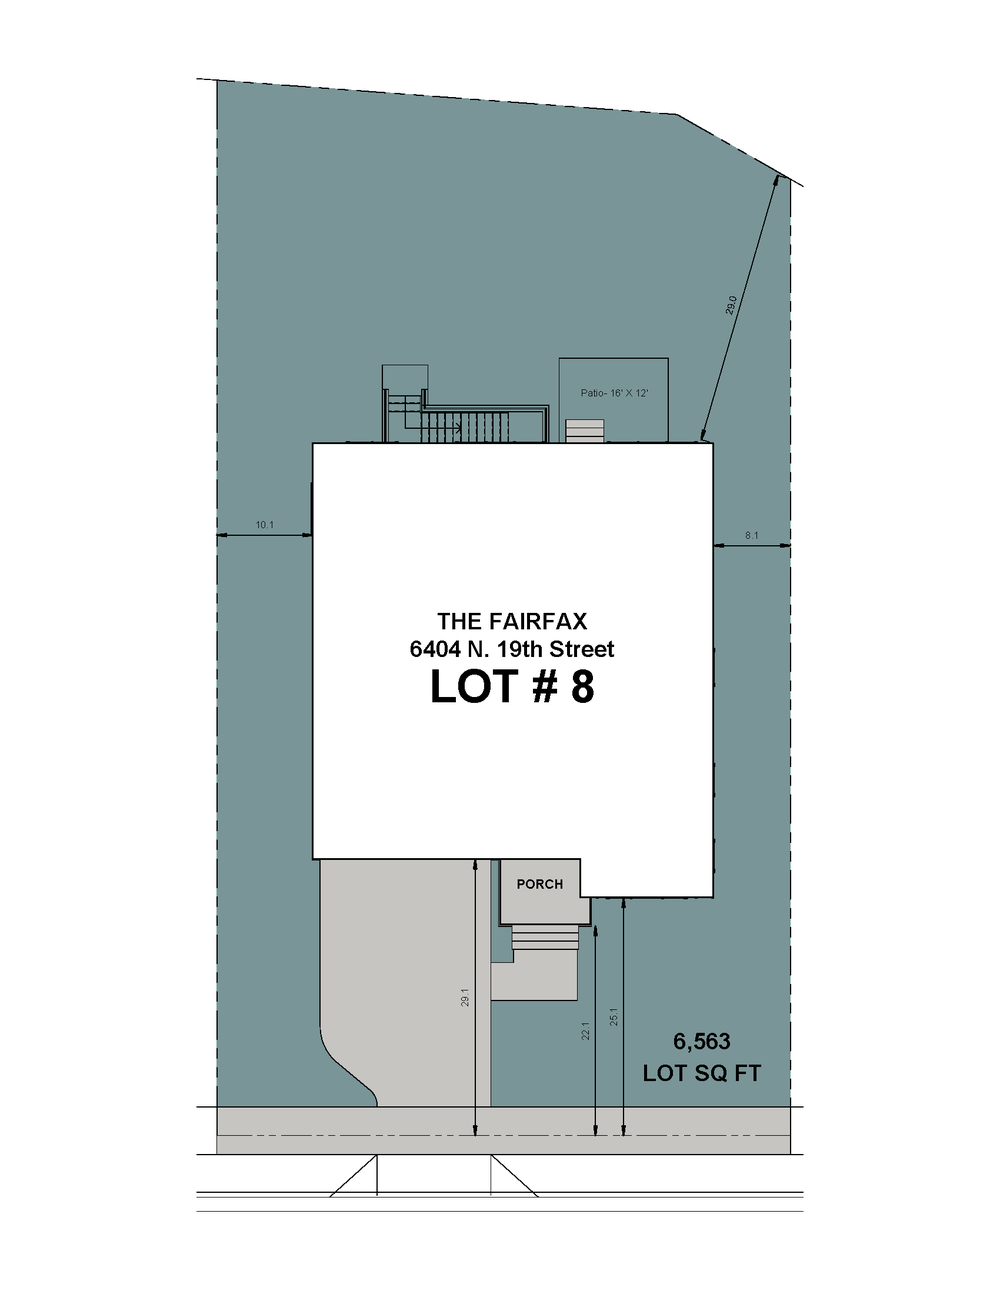 Lot 8 Site Plan-6404 N 19th Street-The Fairfax Model.png